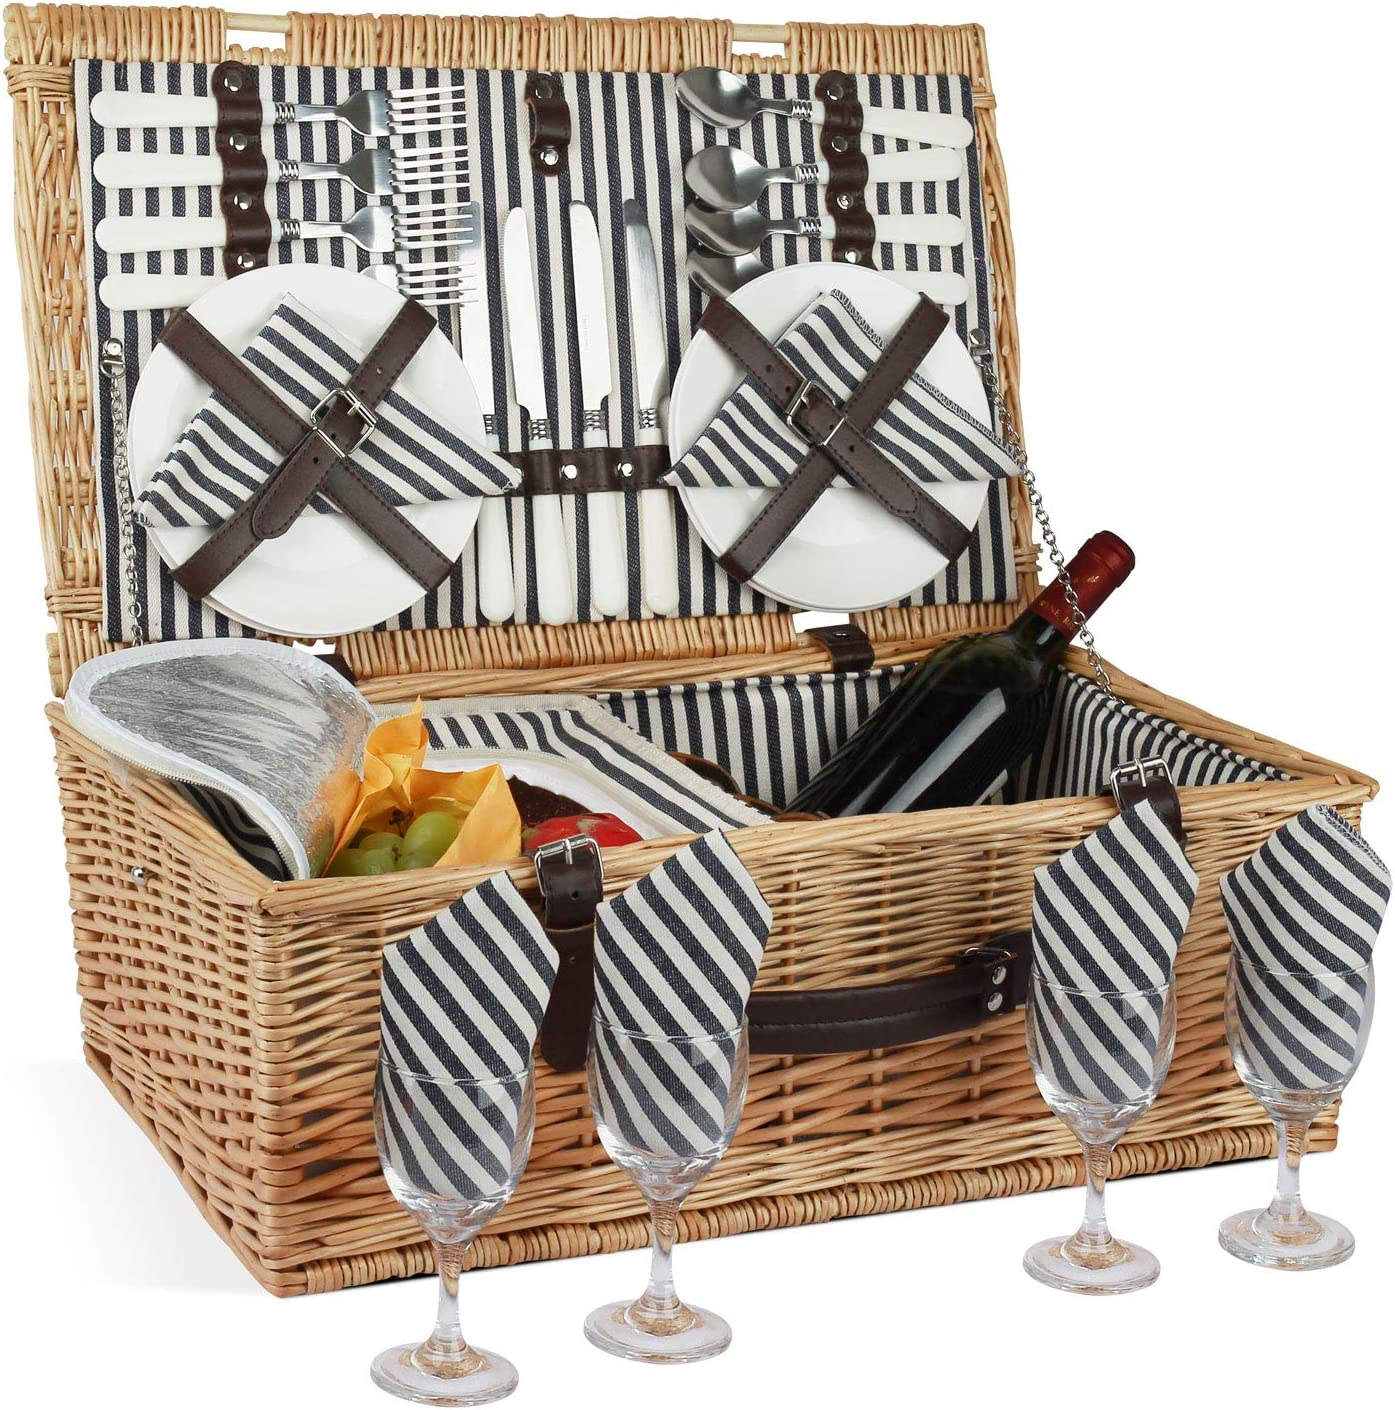 Large Wicker Hamper Set with Big Insulated Cooler Compartment Free Fleece Blanket and Cutlery Service Kit HappyPicnic Picnic Basket Willow for 4 Persons Fashionable White